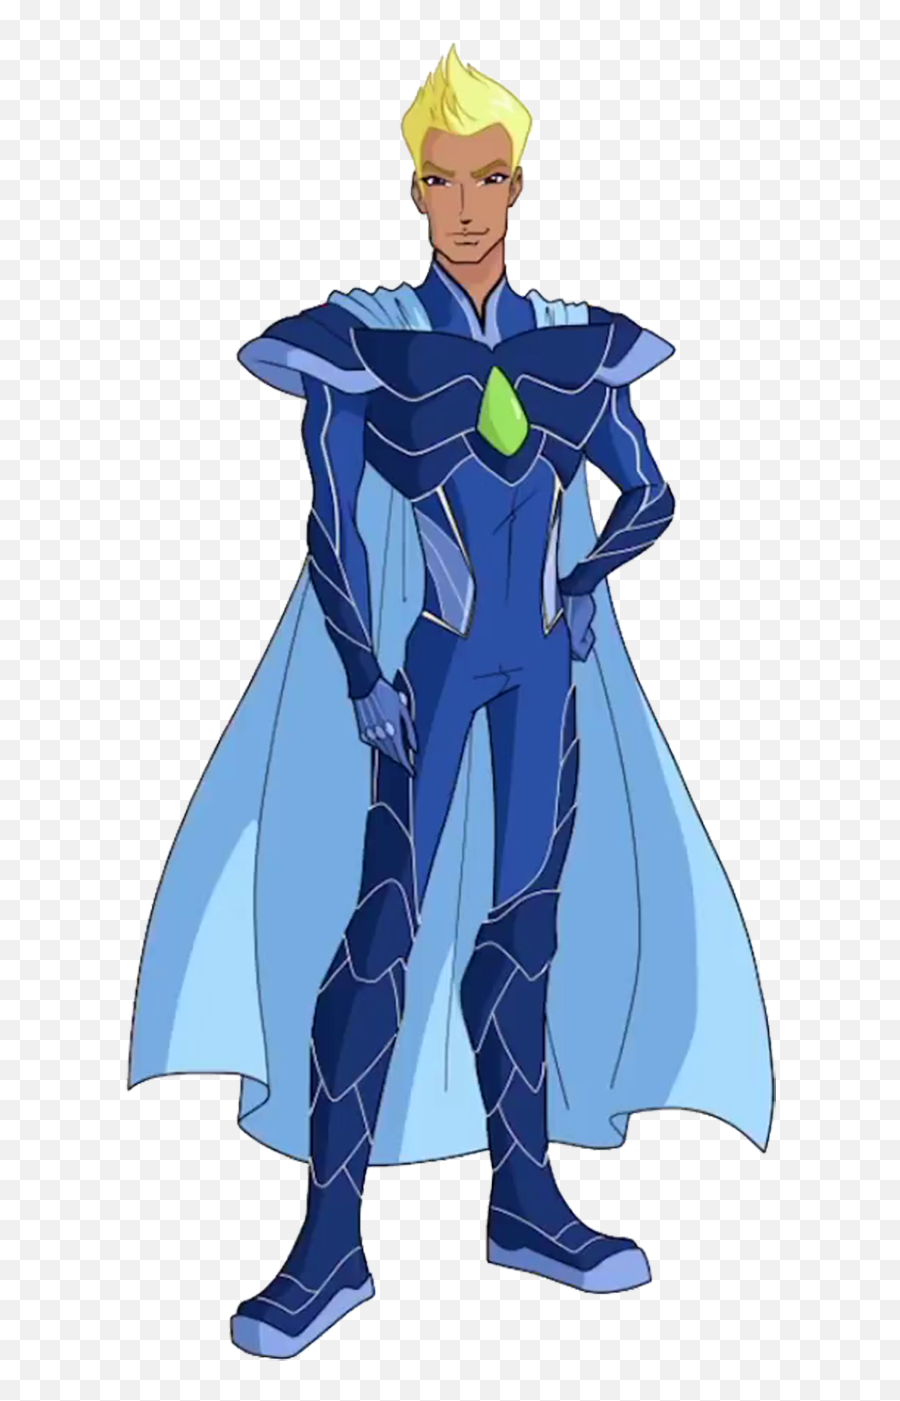 S6 Specialist Sky Winx Club Boys Png Free Transparent Png Images Pngaaa Com